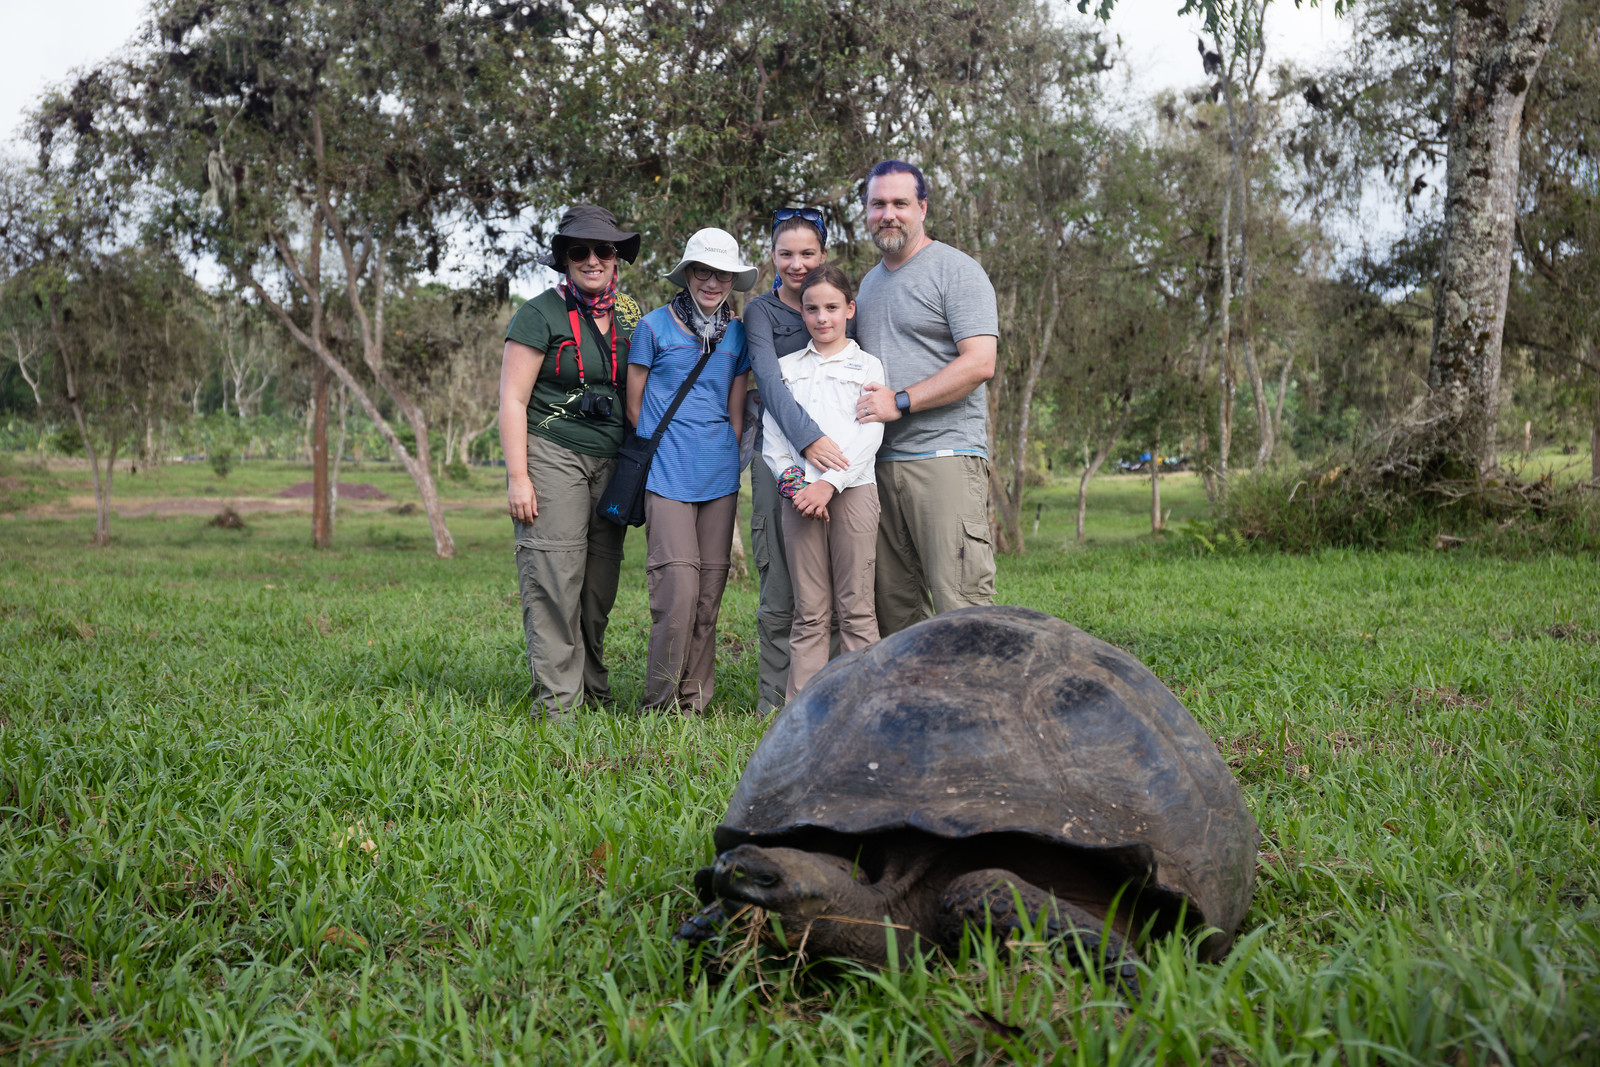 family standing behind large tortoise